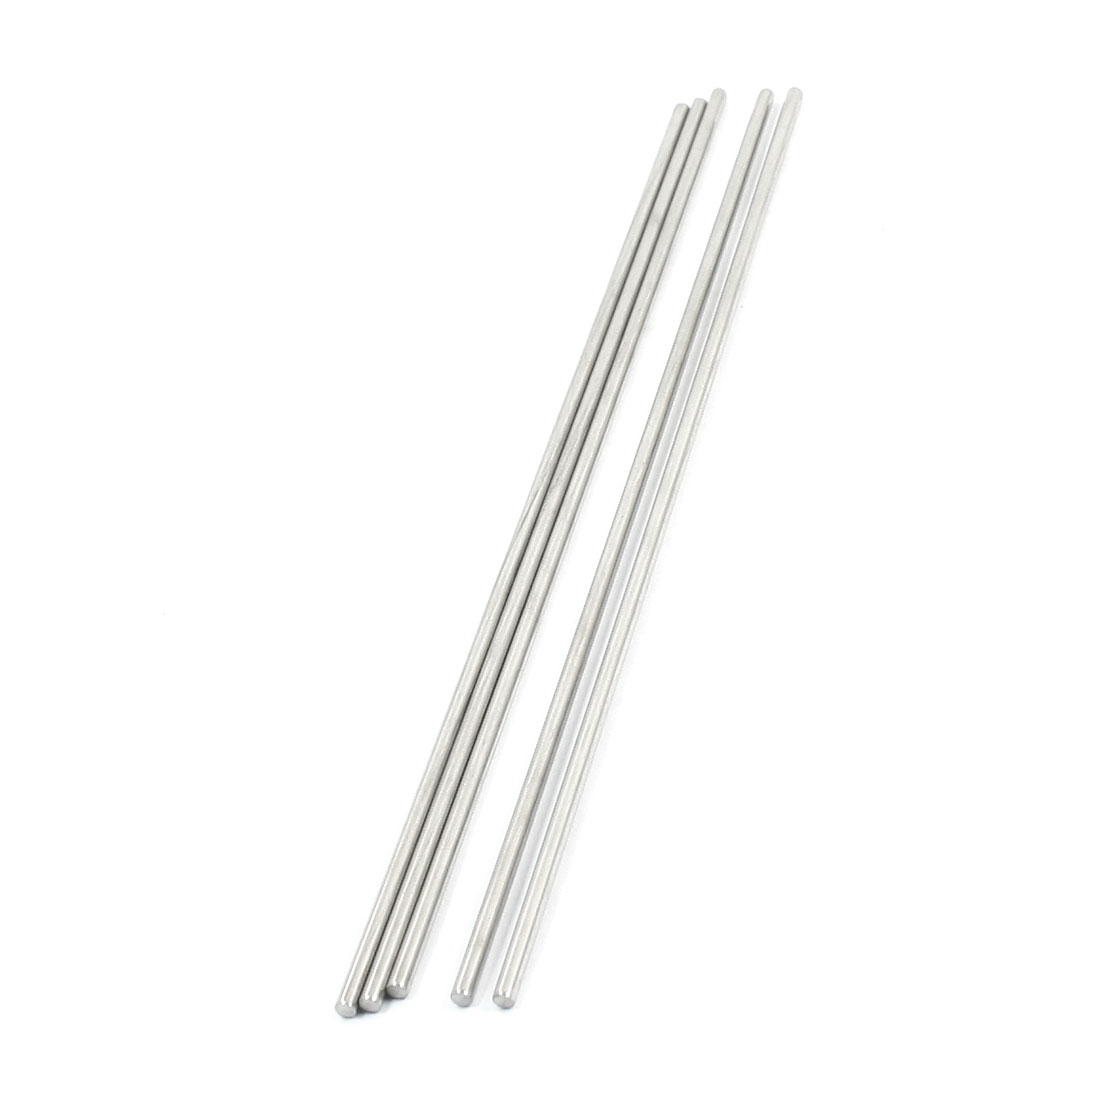 5PCS 170mm x 2.5mm Stainless Steel Round Rod Axle Bars for RC Toys